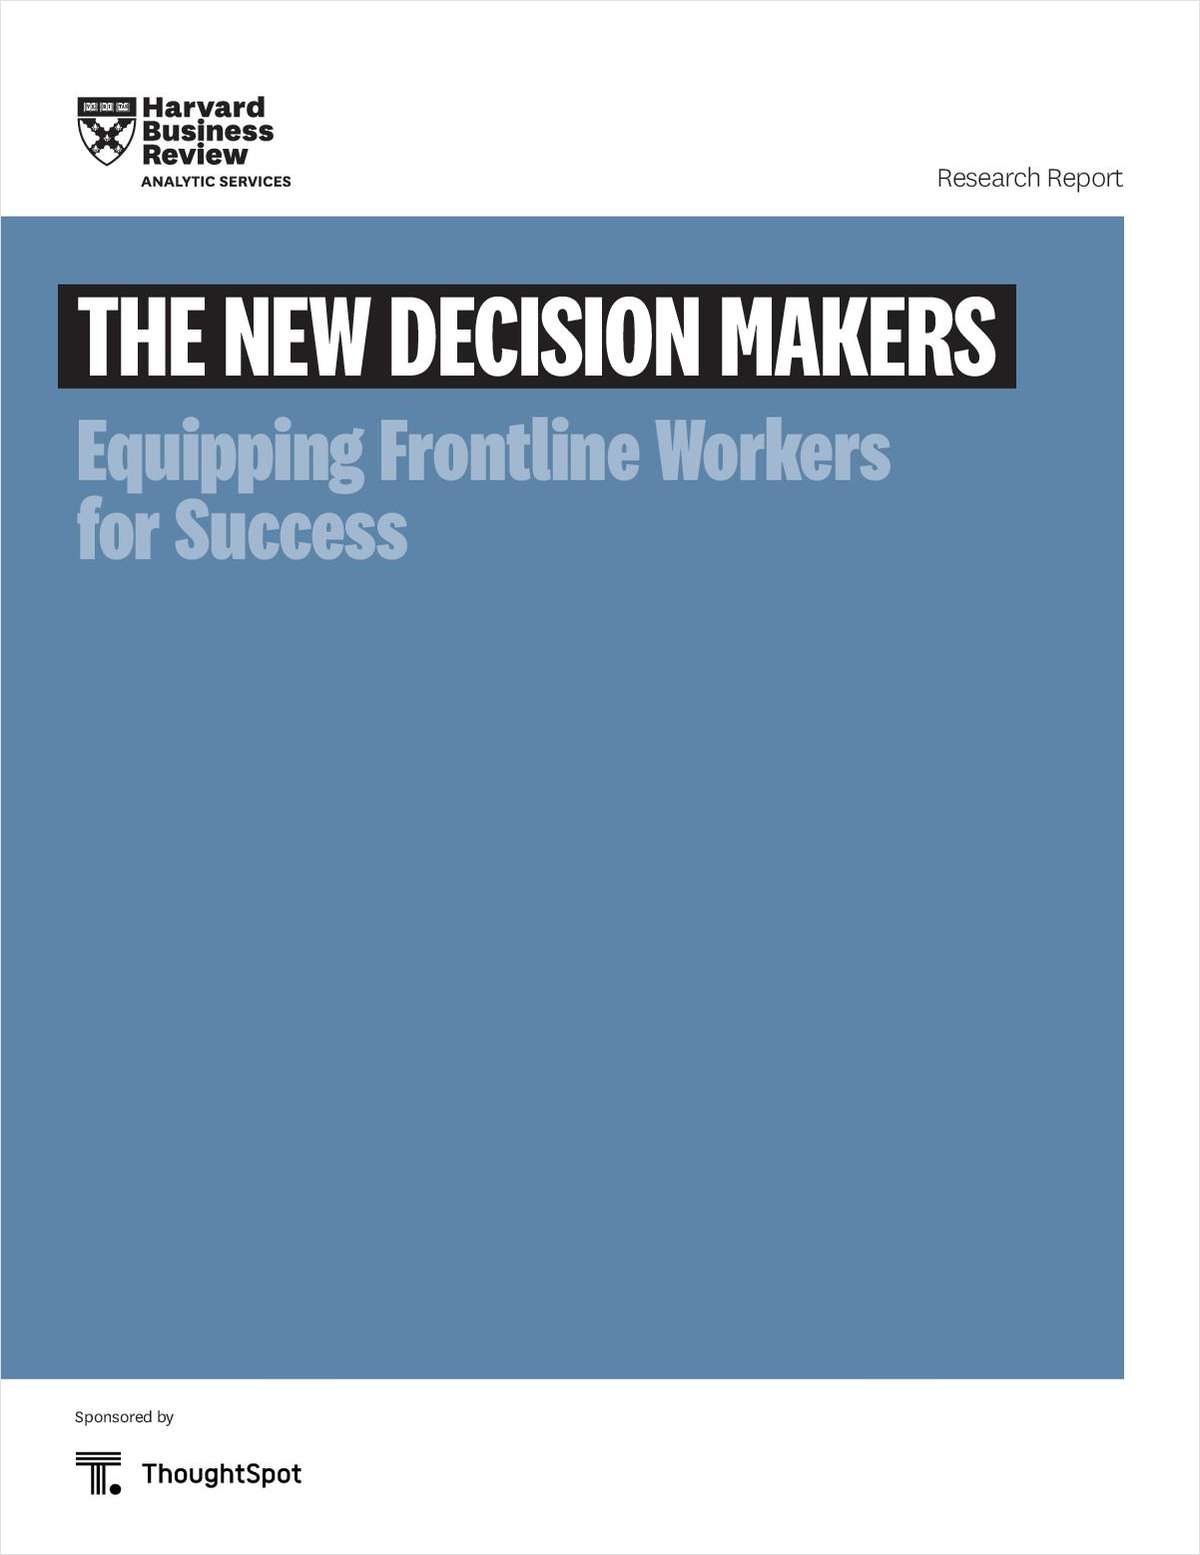 HBR Report: Meet the New Decision Maker